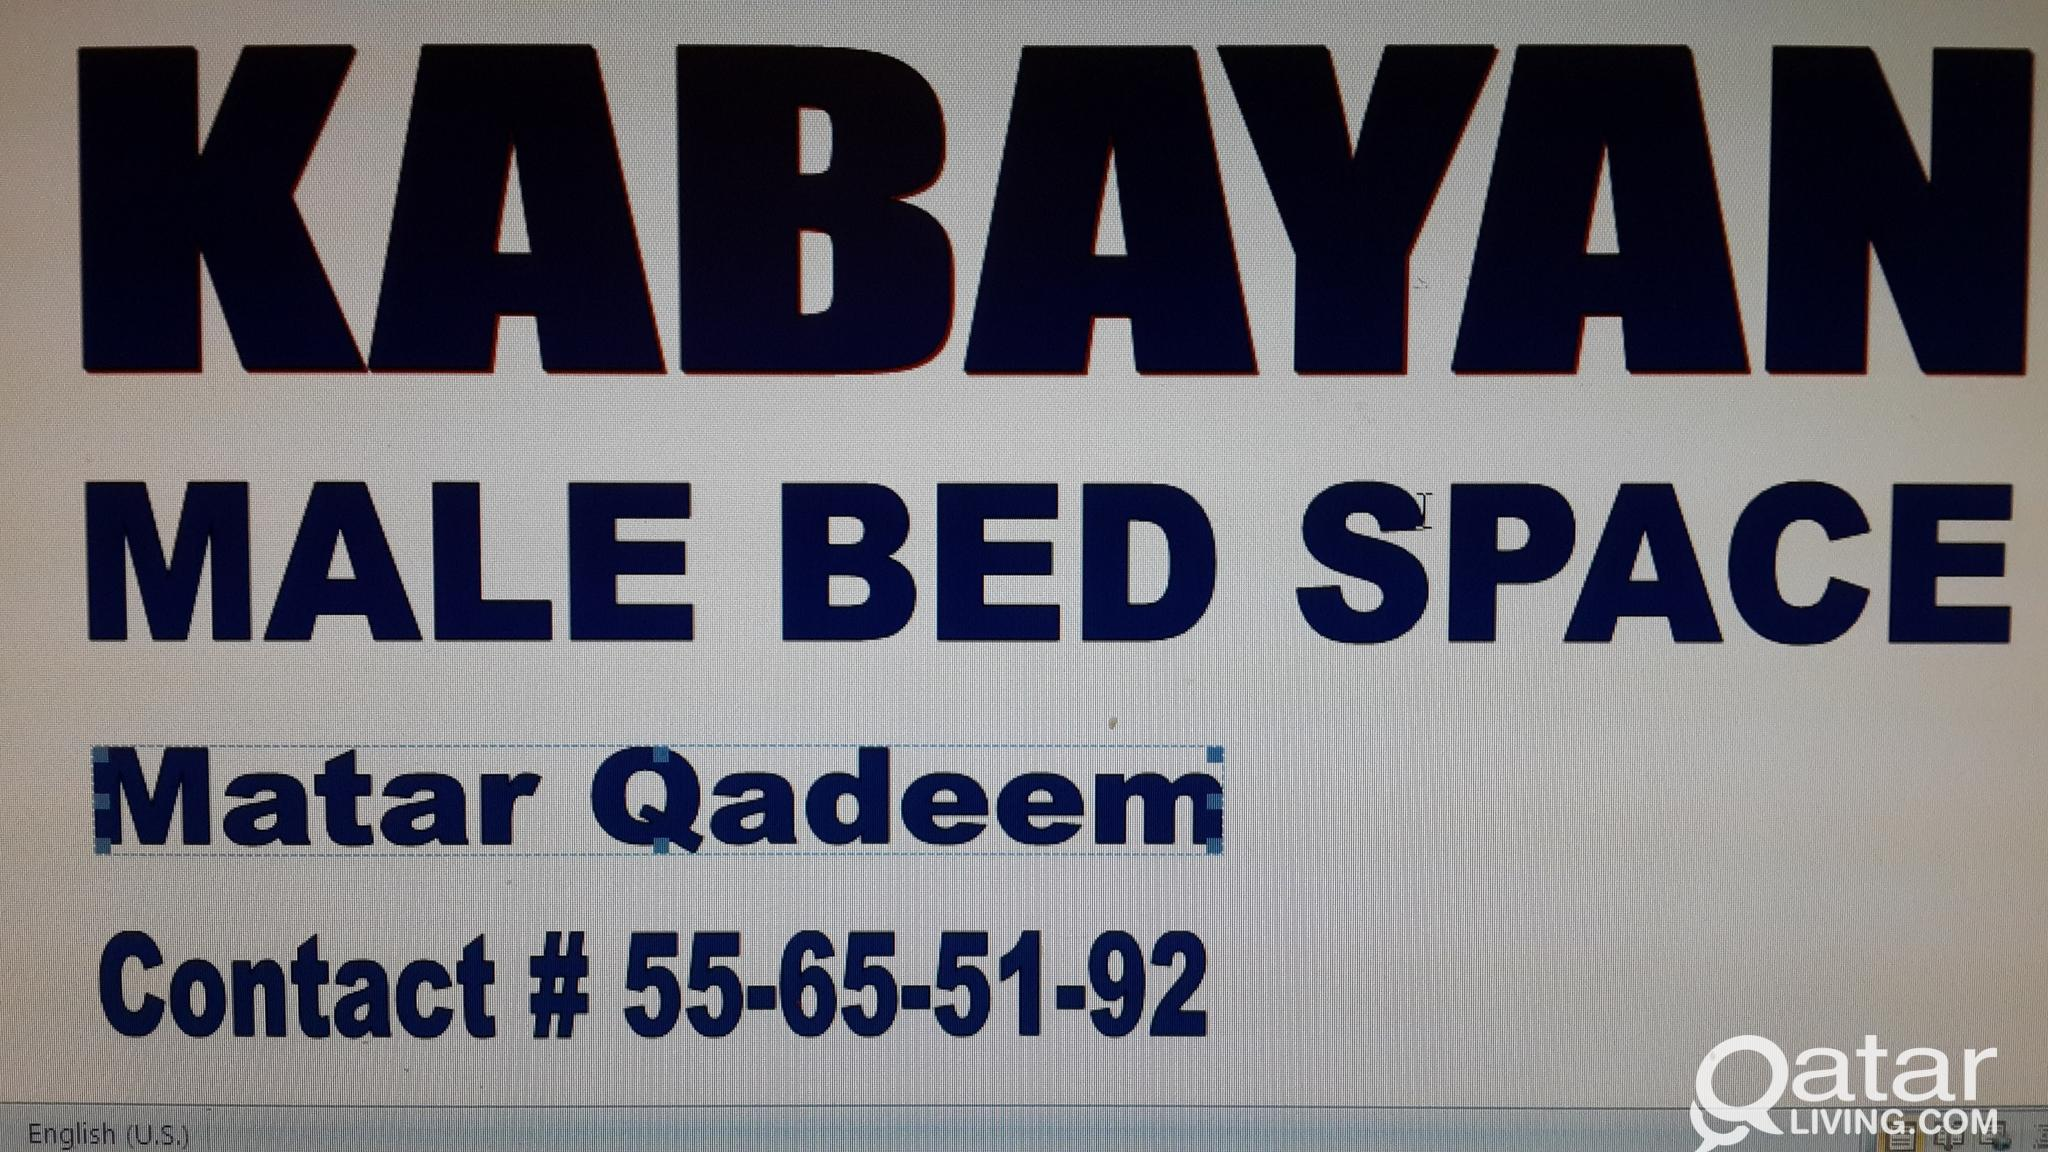 Bedspace for kabayan male